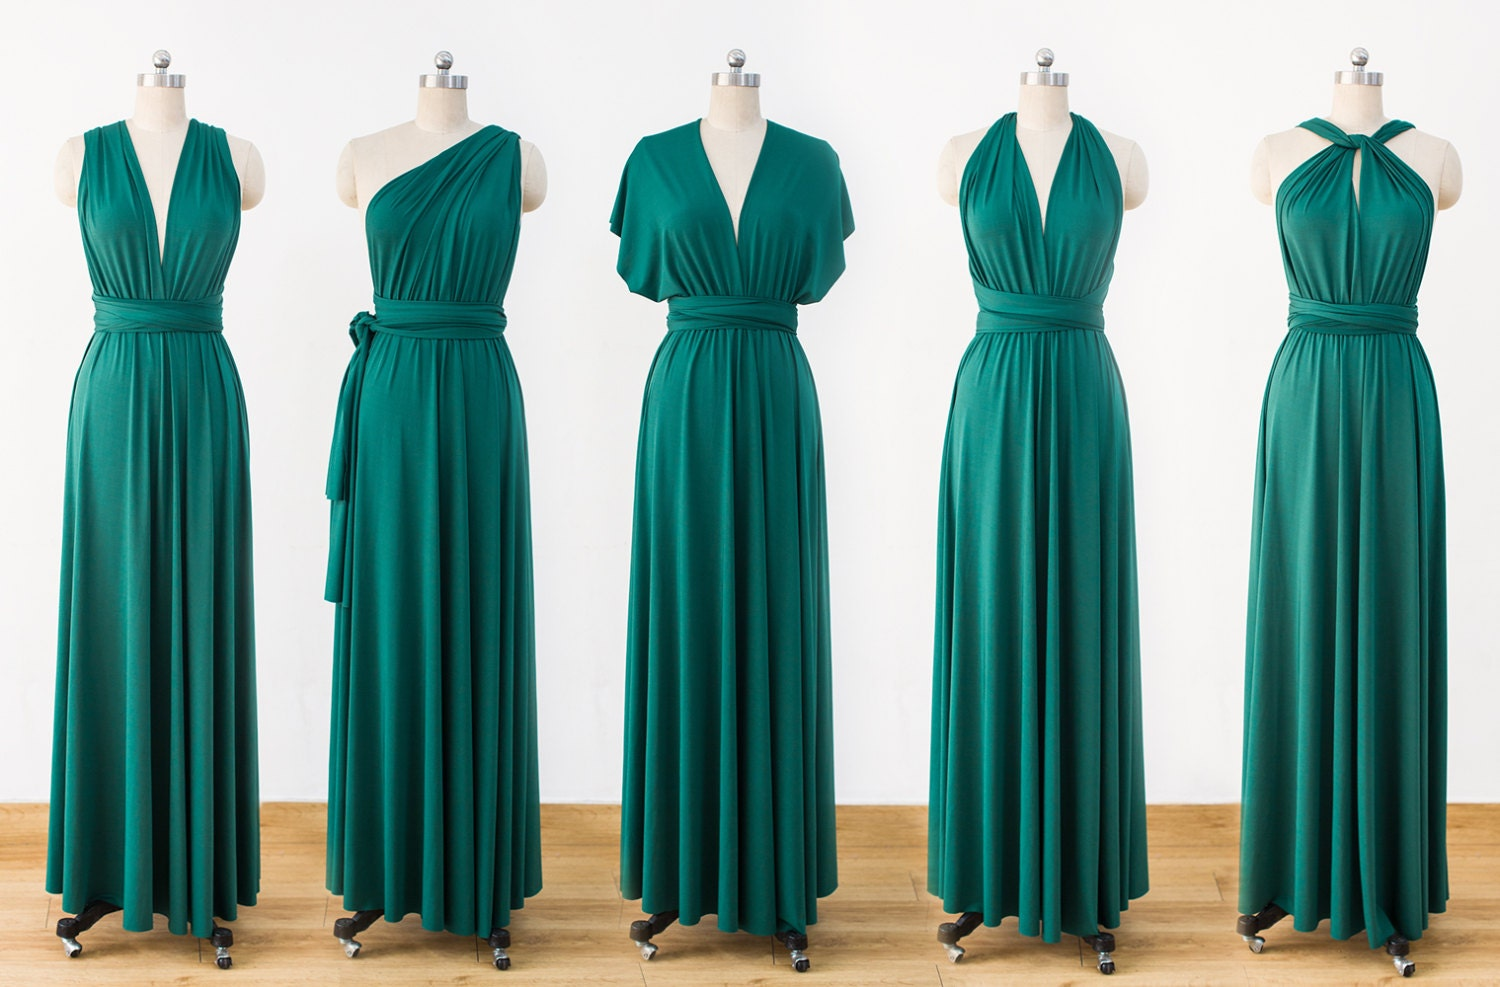 Green Maxi Infinity Dress Convertible Bridesmaid Dress Cheap